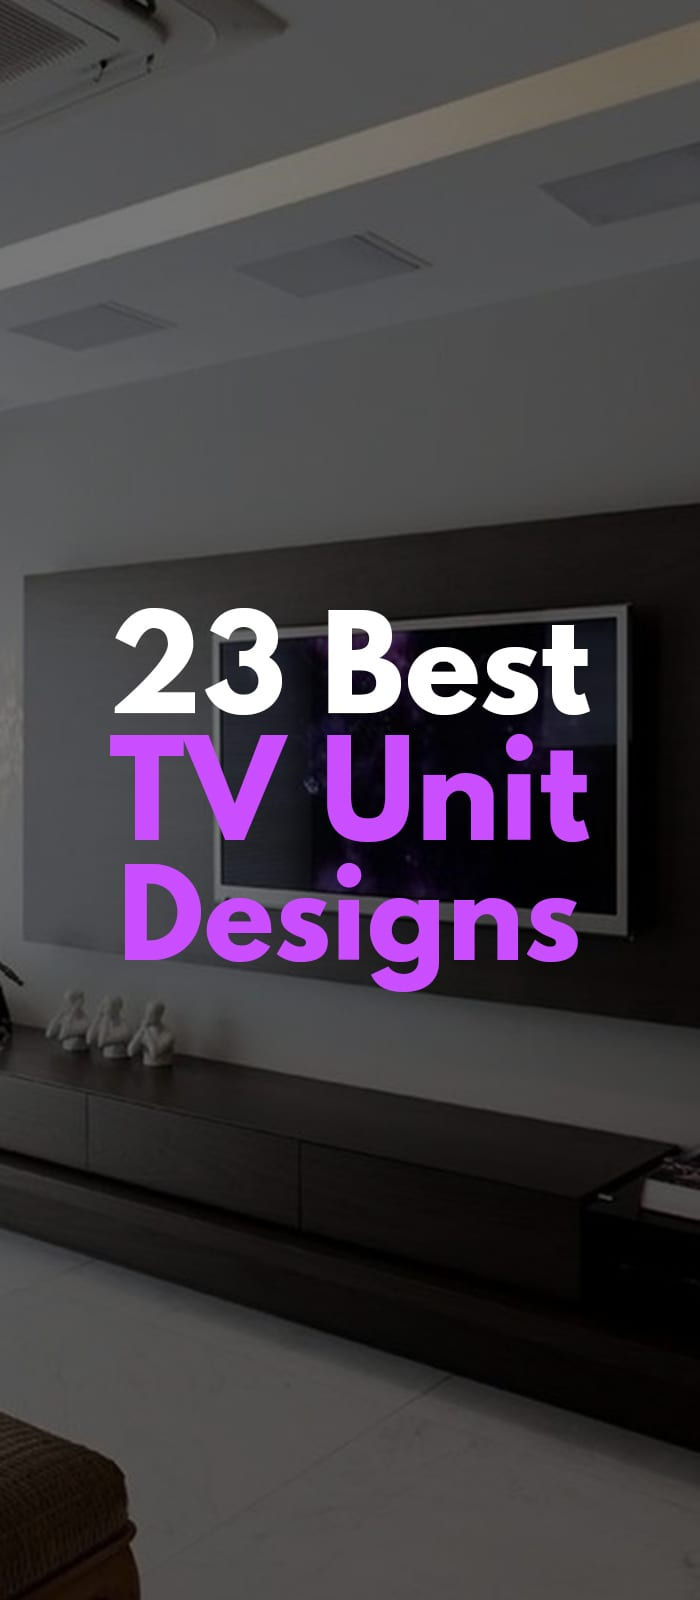 Simple TV units design ideas.